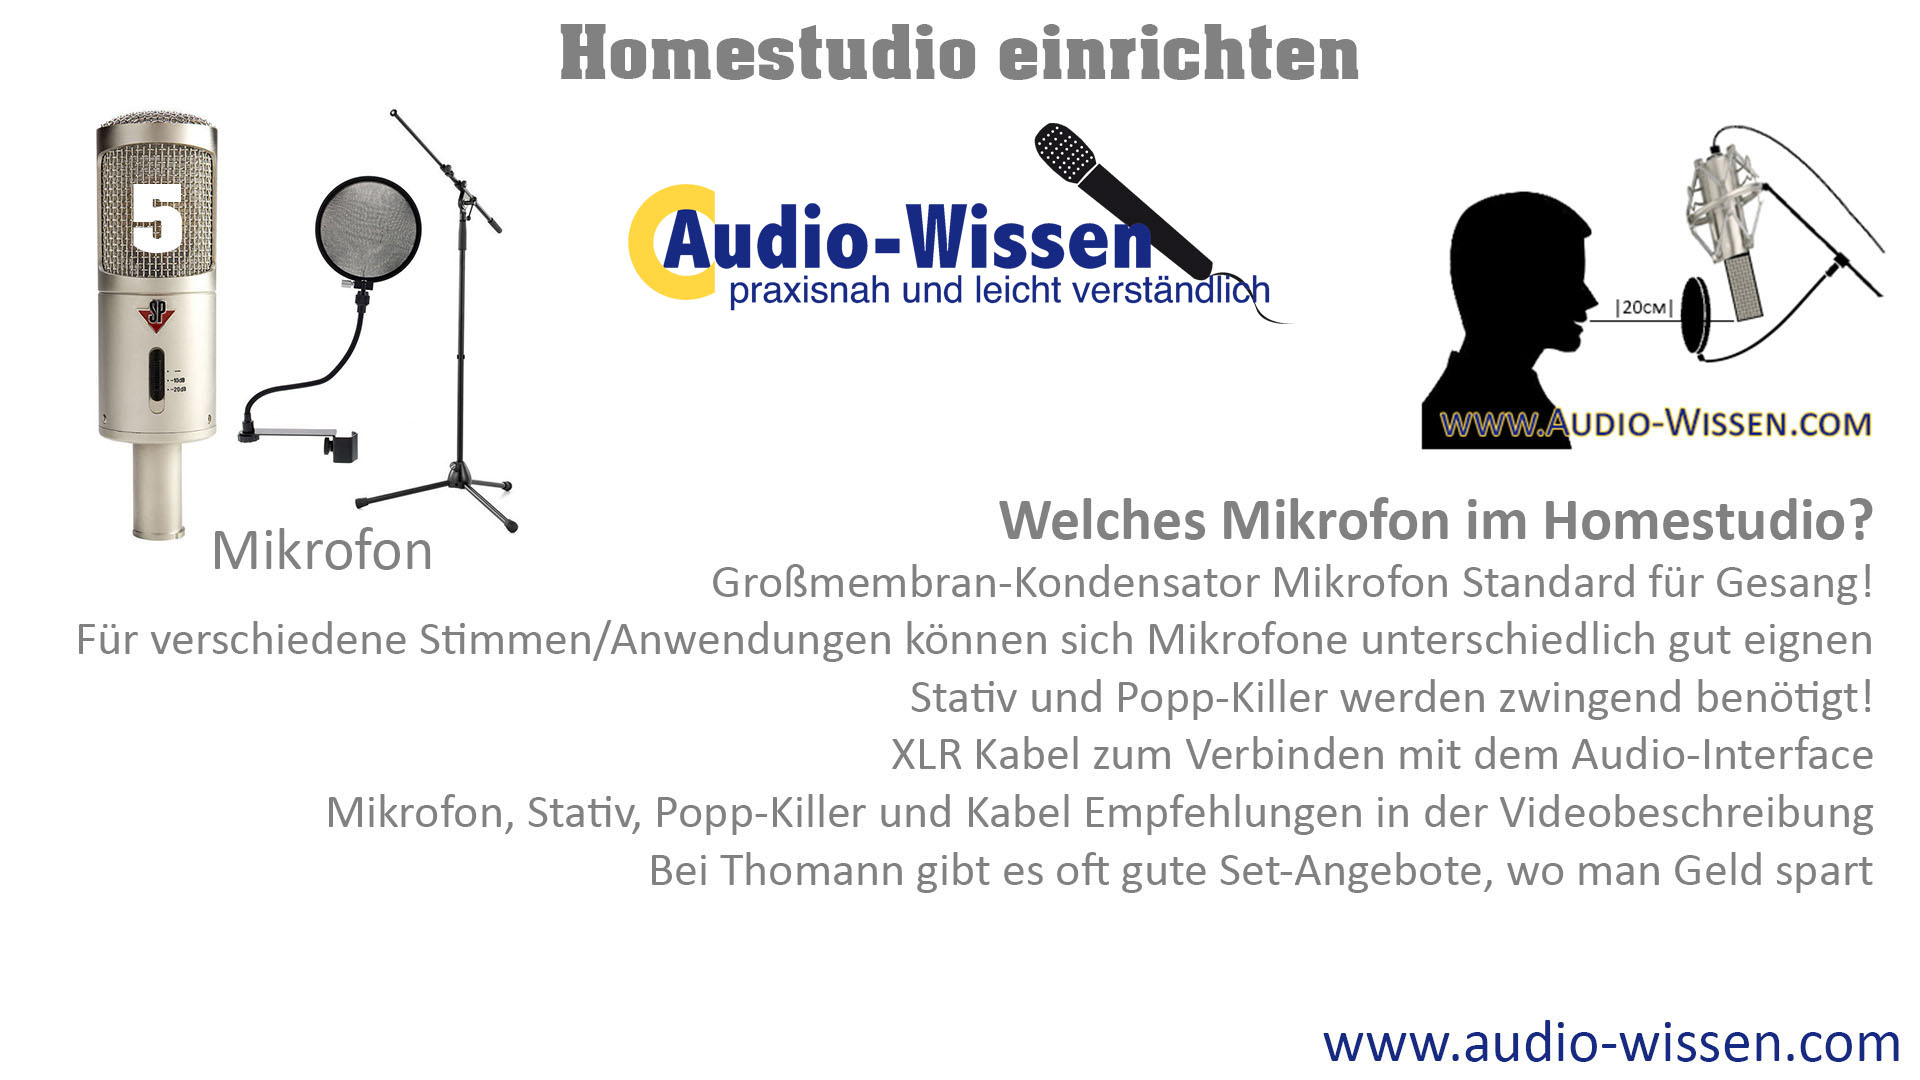 Welches Mikrofon im Homestudio